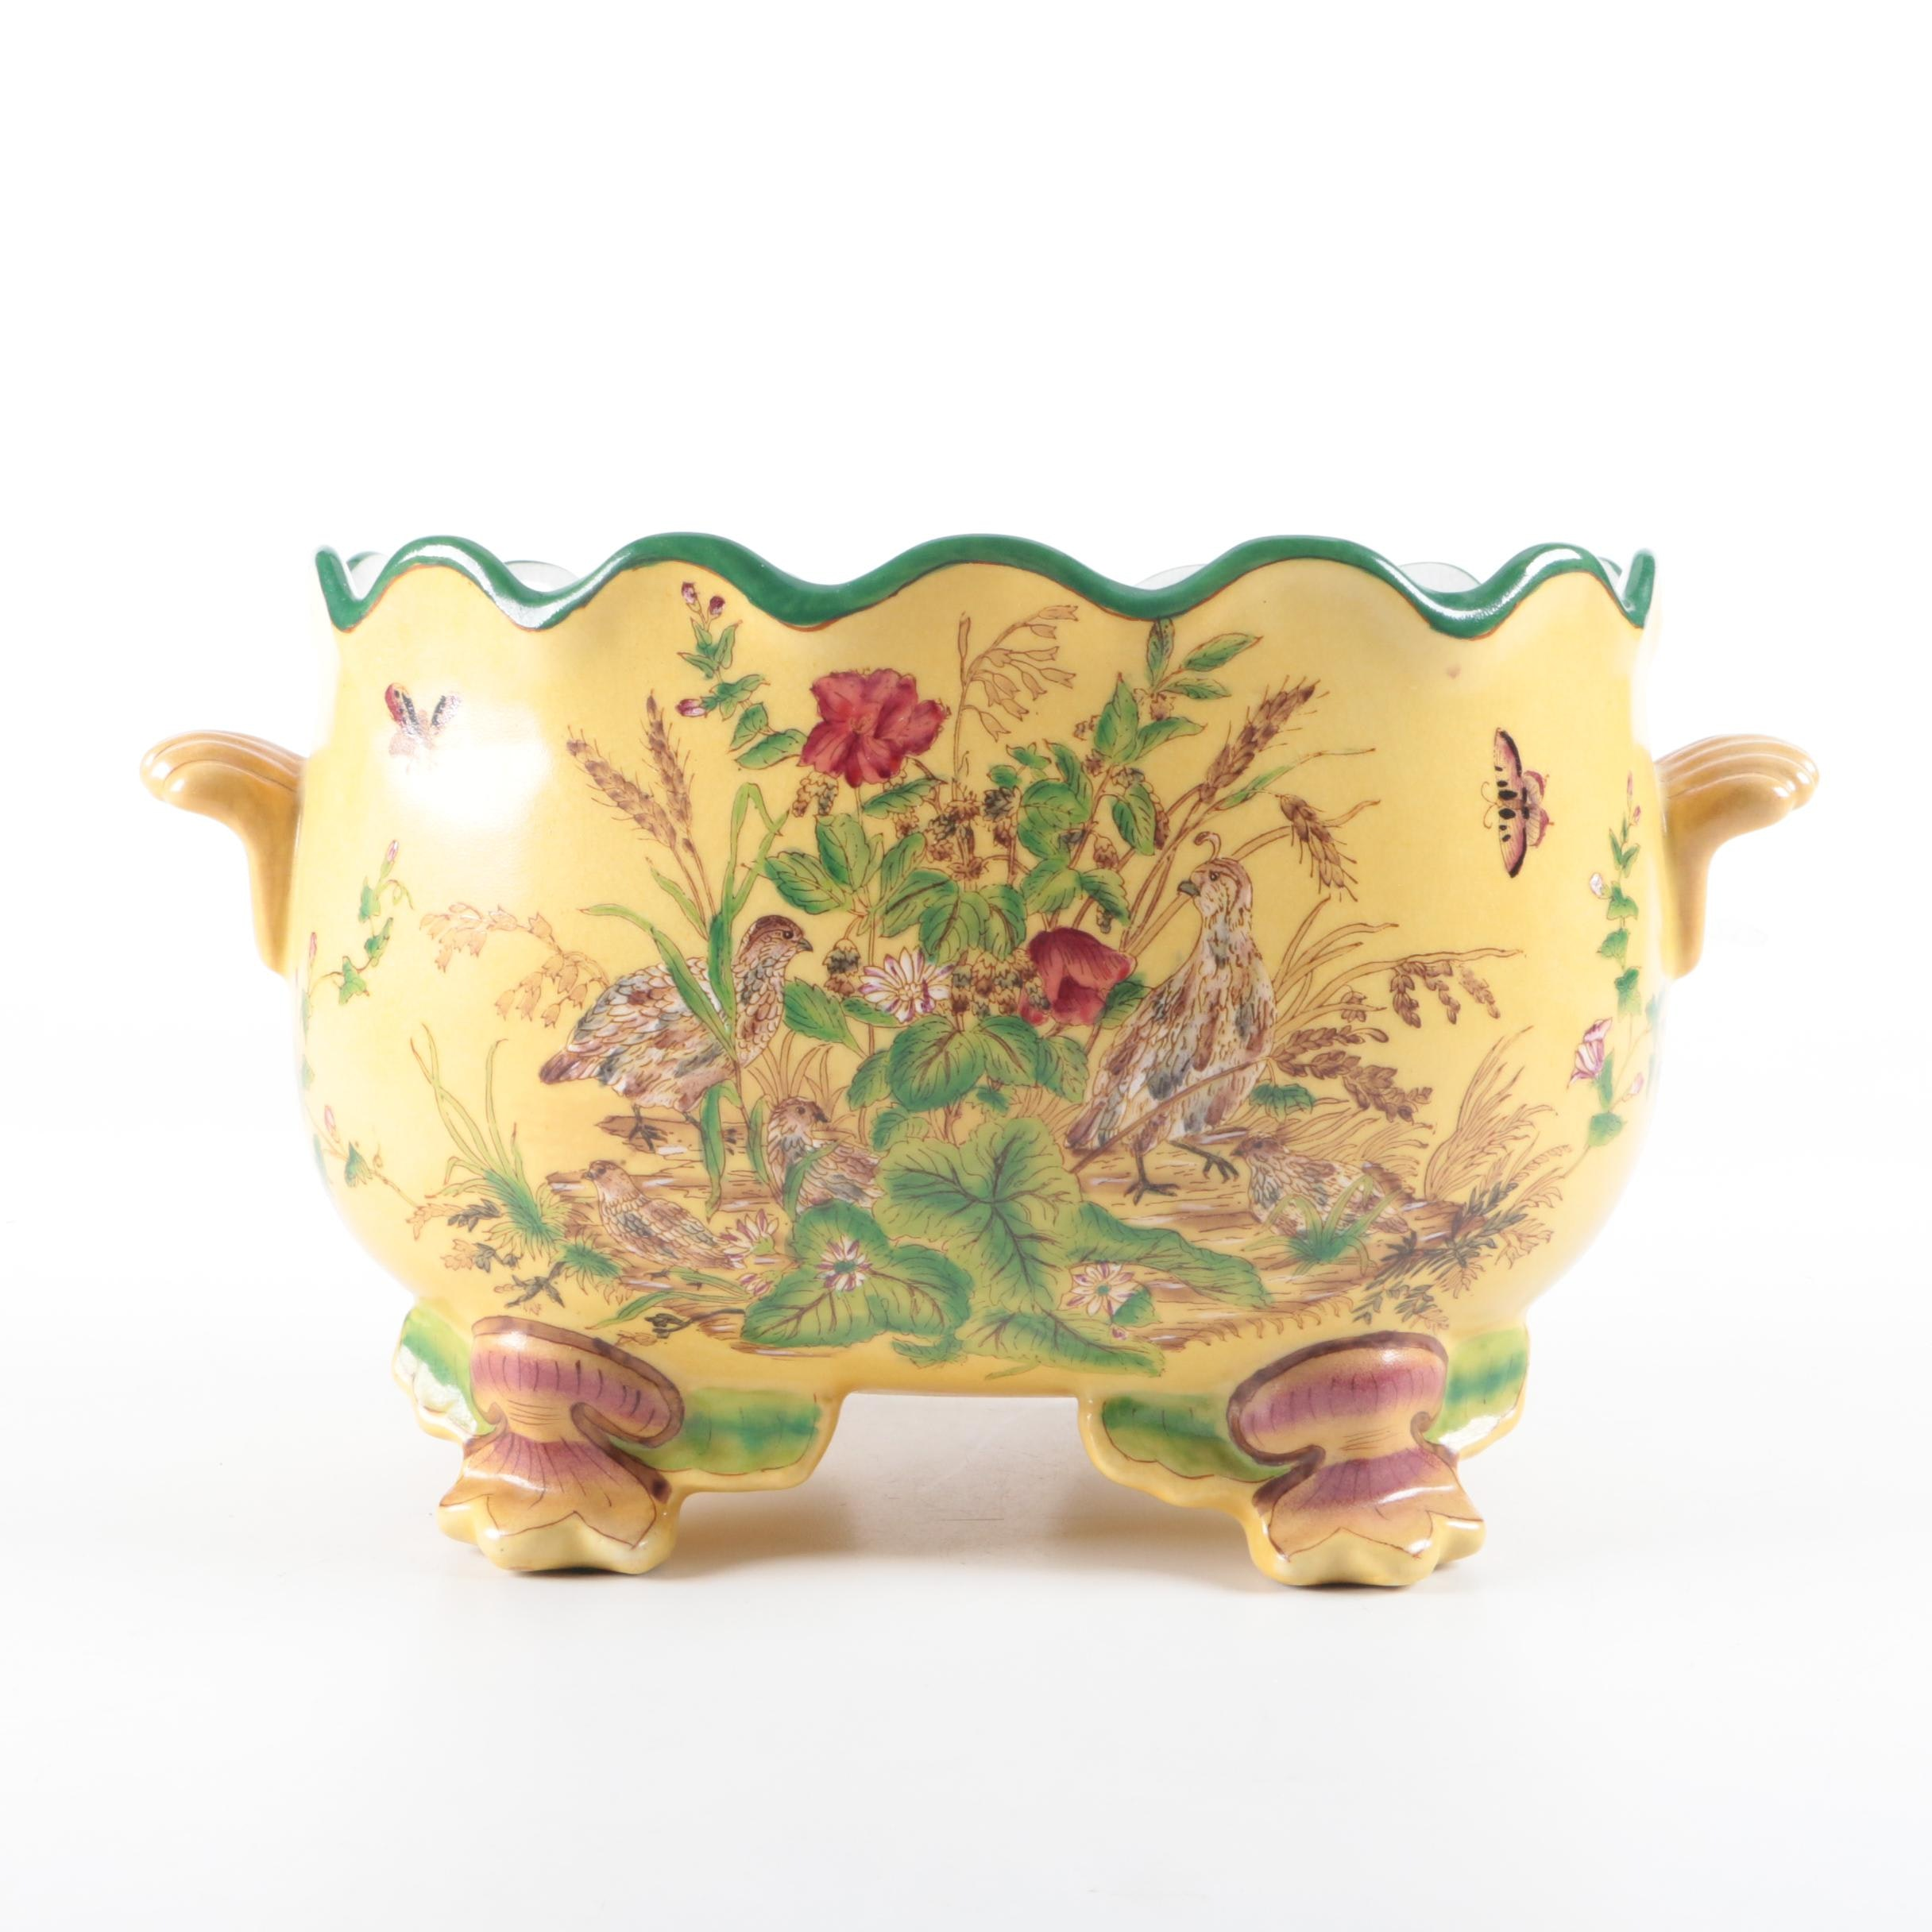 Chinese Hand-Painted Footed Ceramic Jardiniere